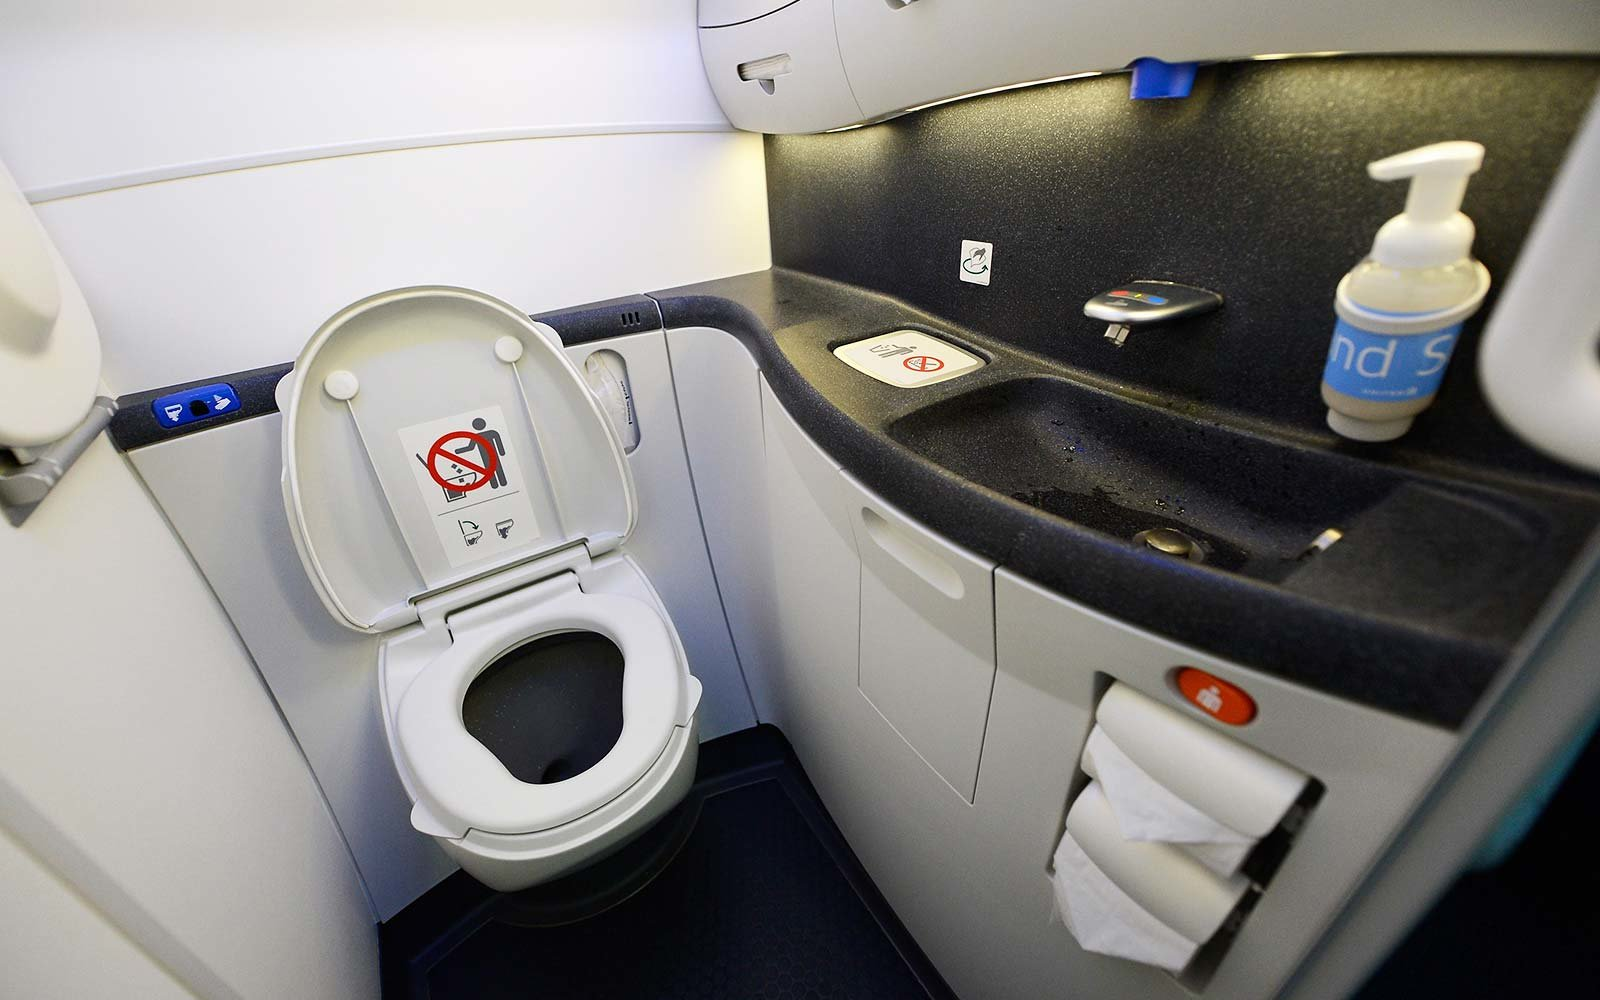 LOS ANGELES, CA - NOVEMBER 30: A touch lavatory is seen on the United Airlines Boeing 787 Dreamliner at Los Angeles International Airport on November 30, 2012 in Los Angeles, California. In January the new jet is scheduled to begin flying daily non-stop between Los Angeles International airport and Japan's Narita International Airport and later to Shanghai staring in March. The new Boeing 787 Dreamliner will accommodate 219 travelers with 36 seat in United Business First, 70 seats in Economy Plus and 113 in Economy Class. The carbon-fiber composite material that makes up more than 50 percent of the 787 makes the plane jet and more fuel-efficient. (Photo by Kevork Djansezian/Getty Images)